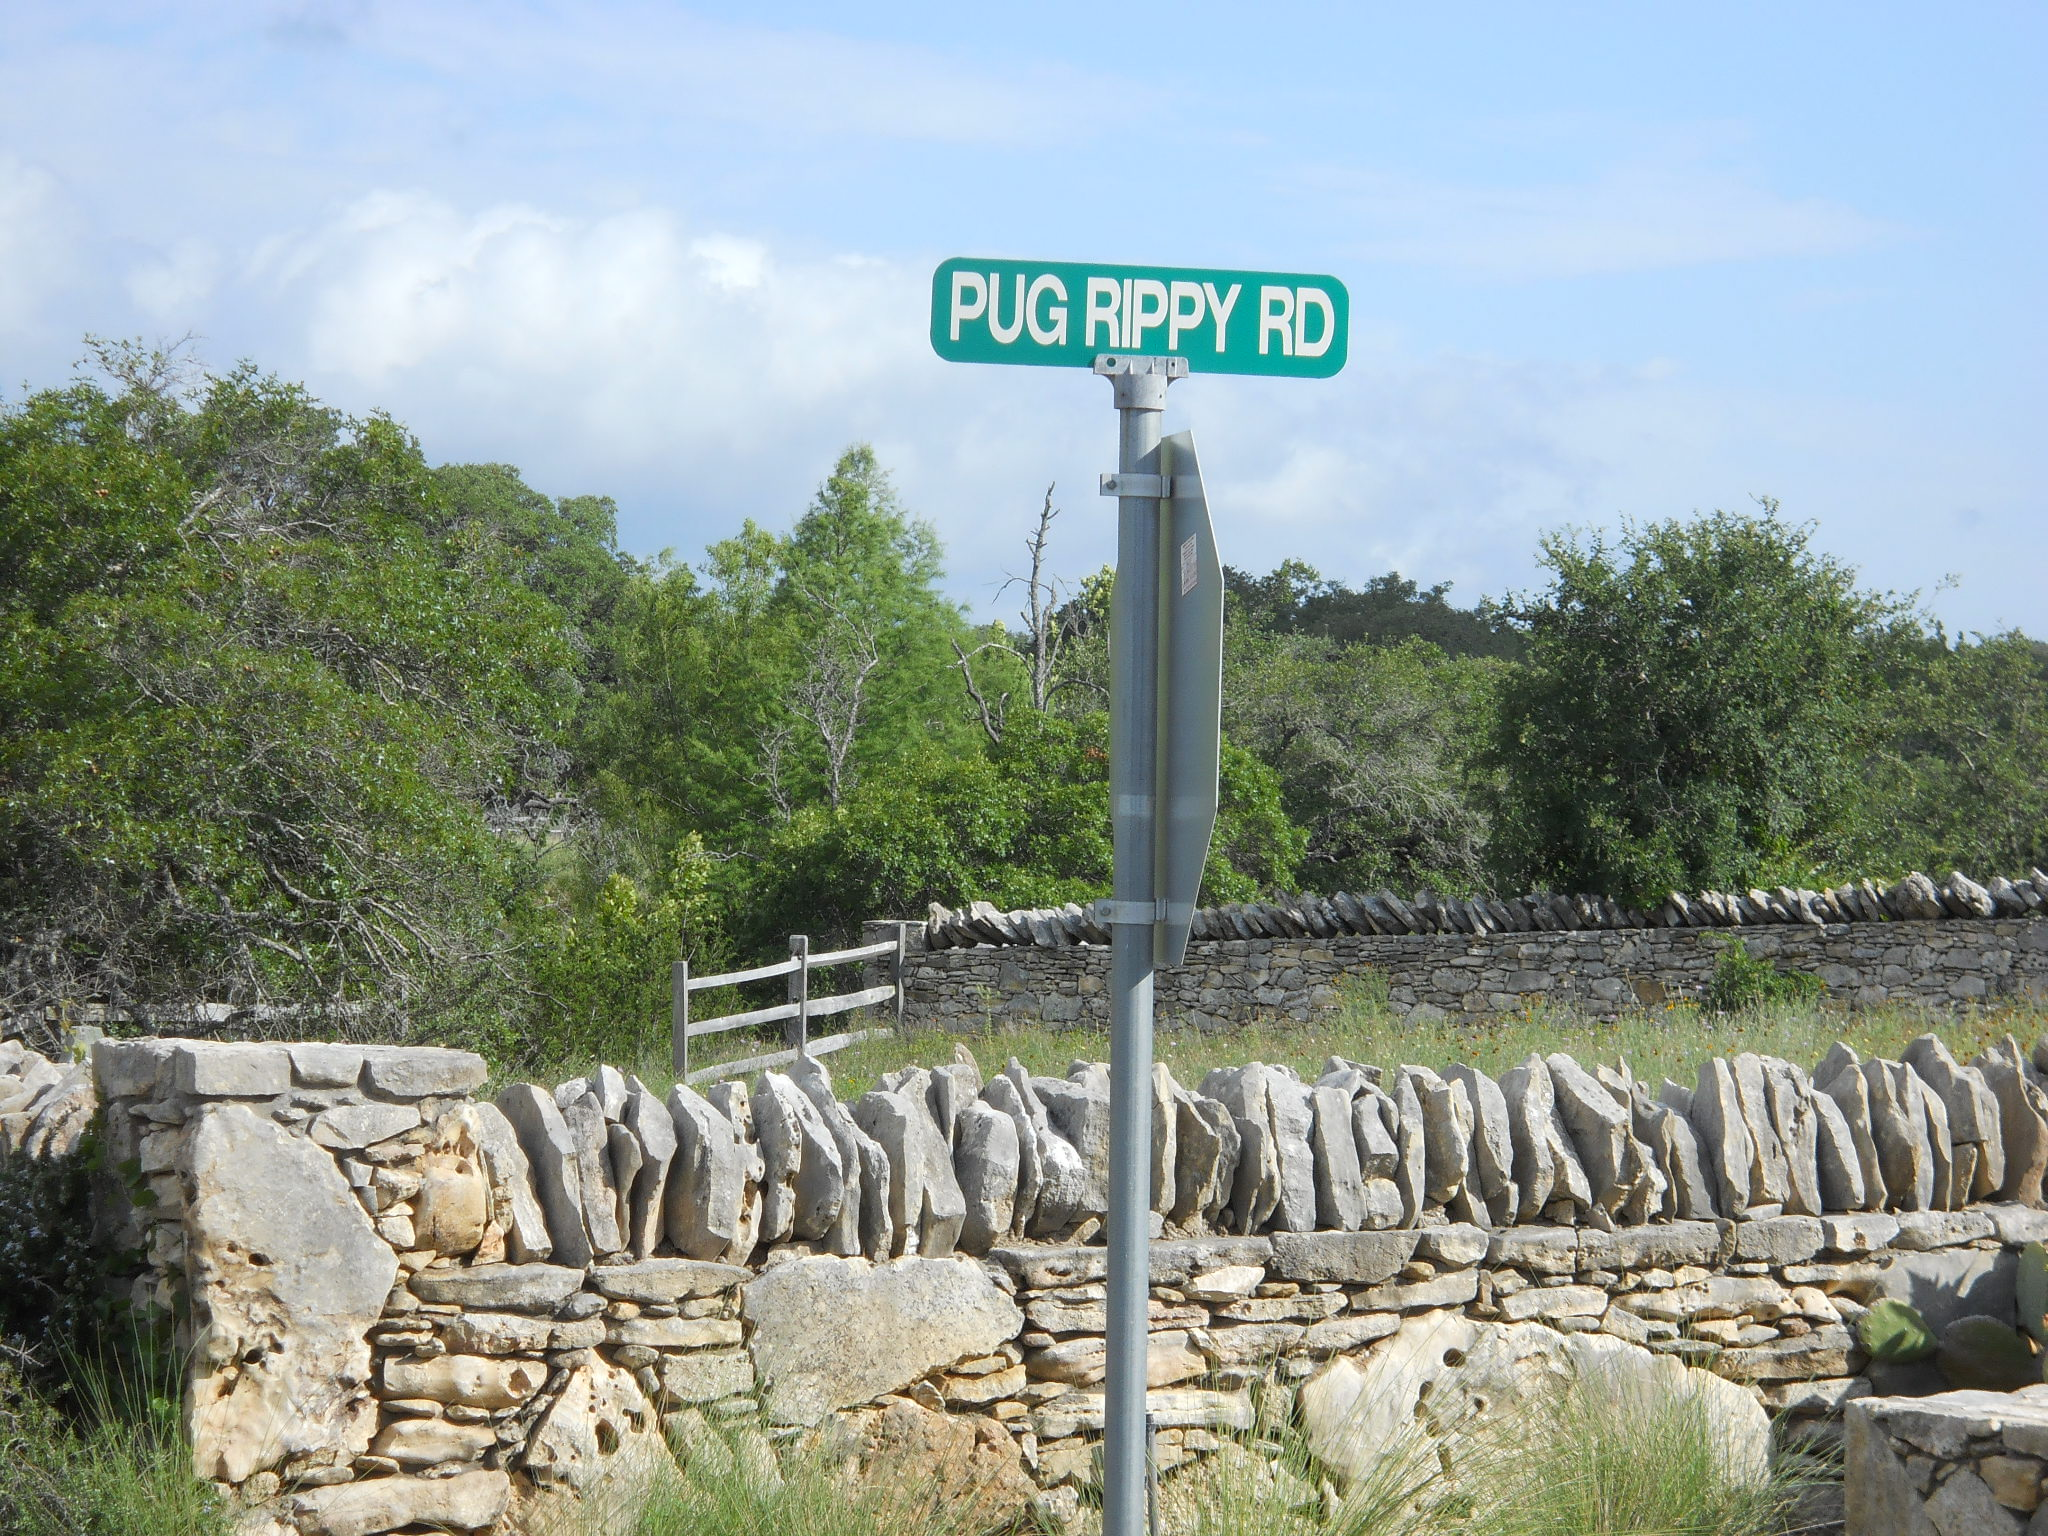 I always got a kick out of the name of this road. Then I found out it's the name of a prominent Dripping Springs businessman.